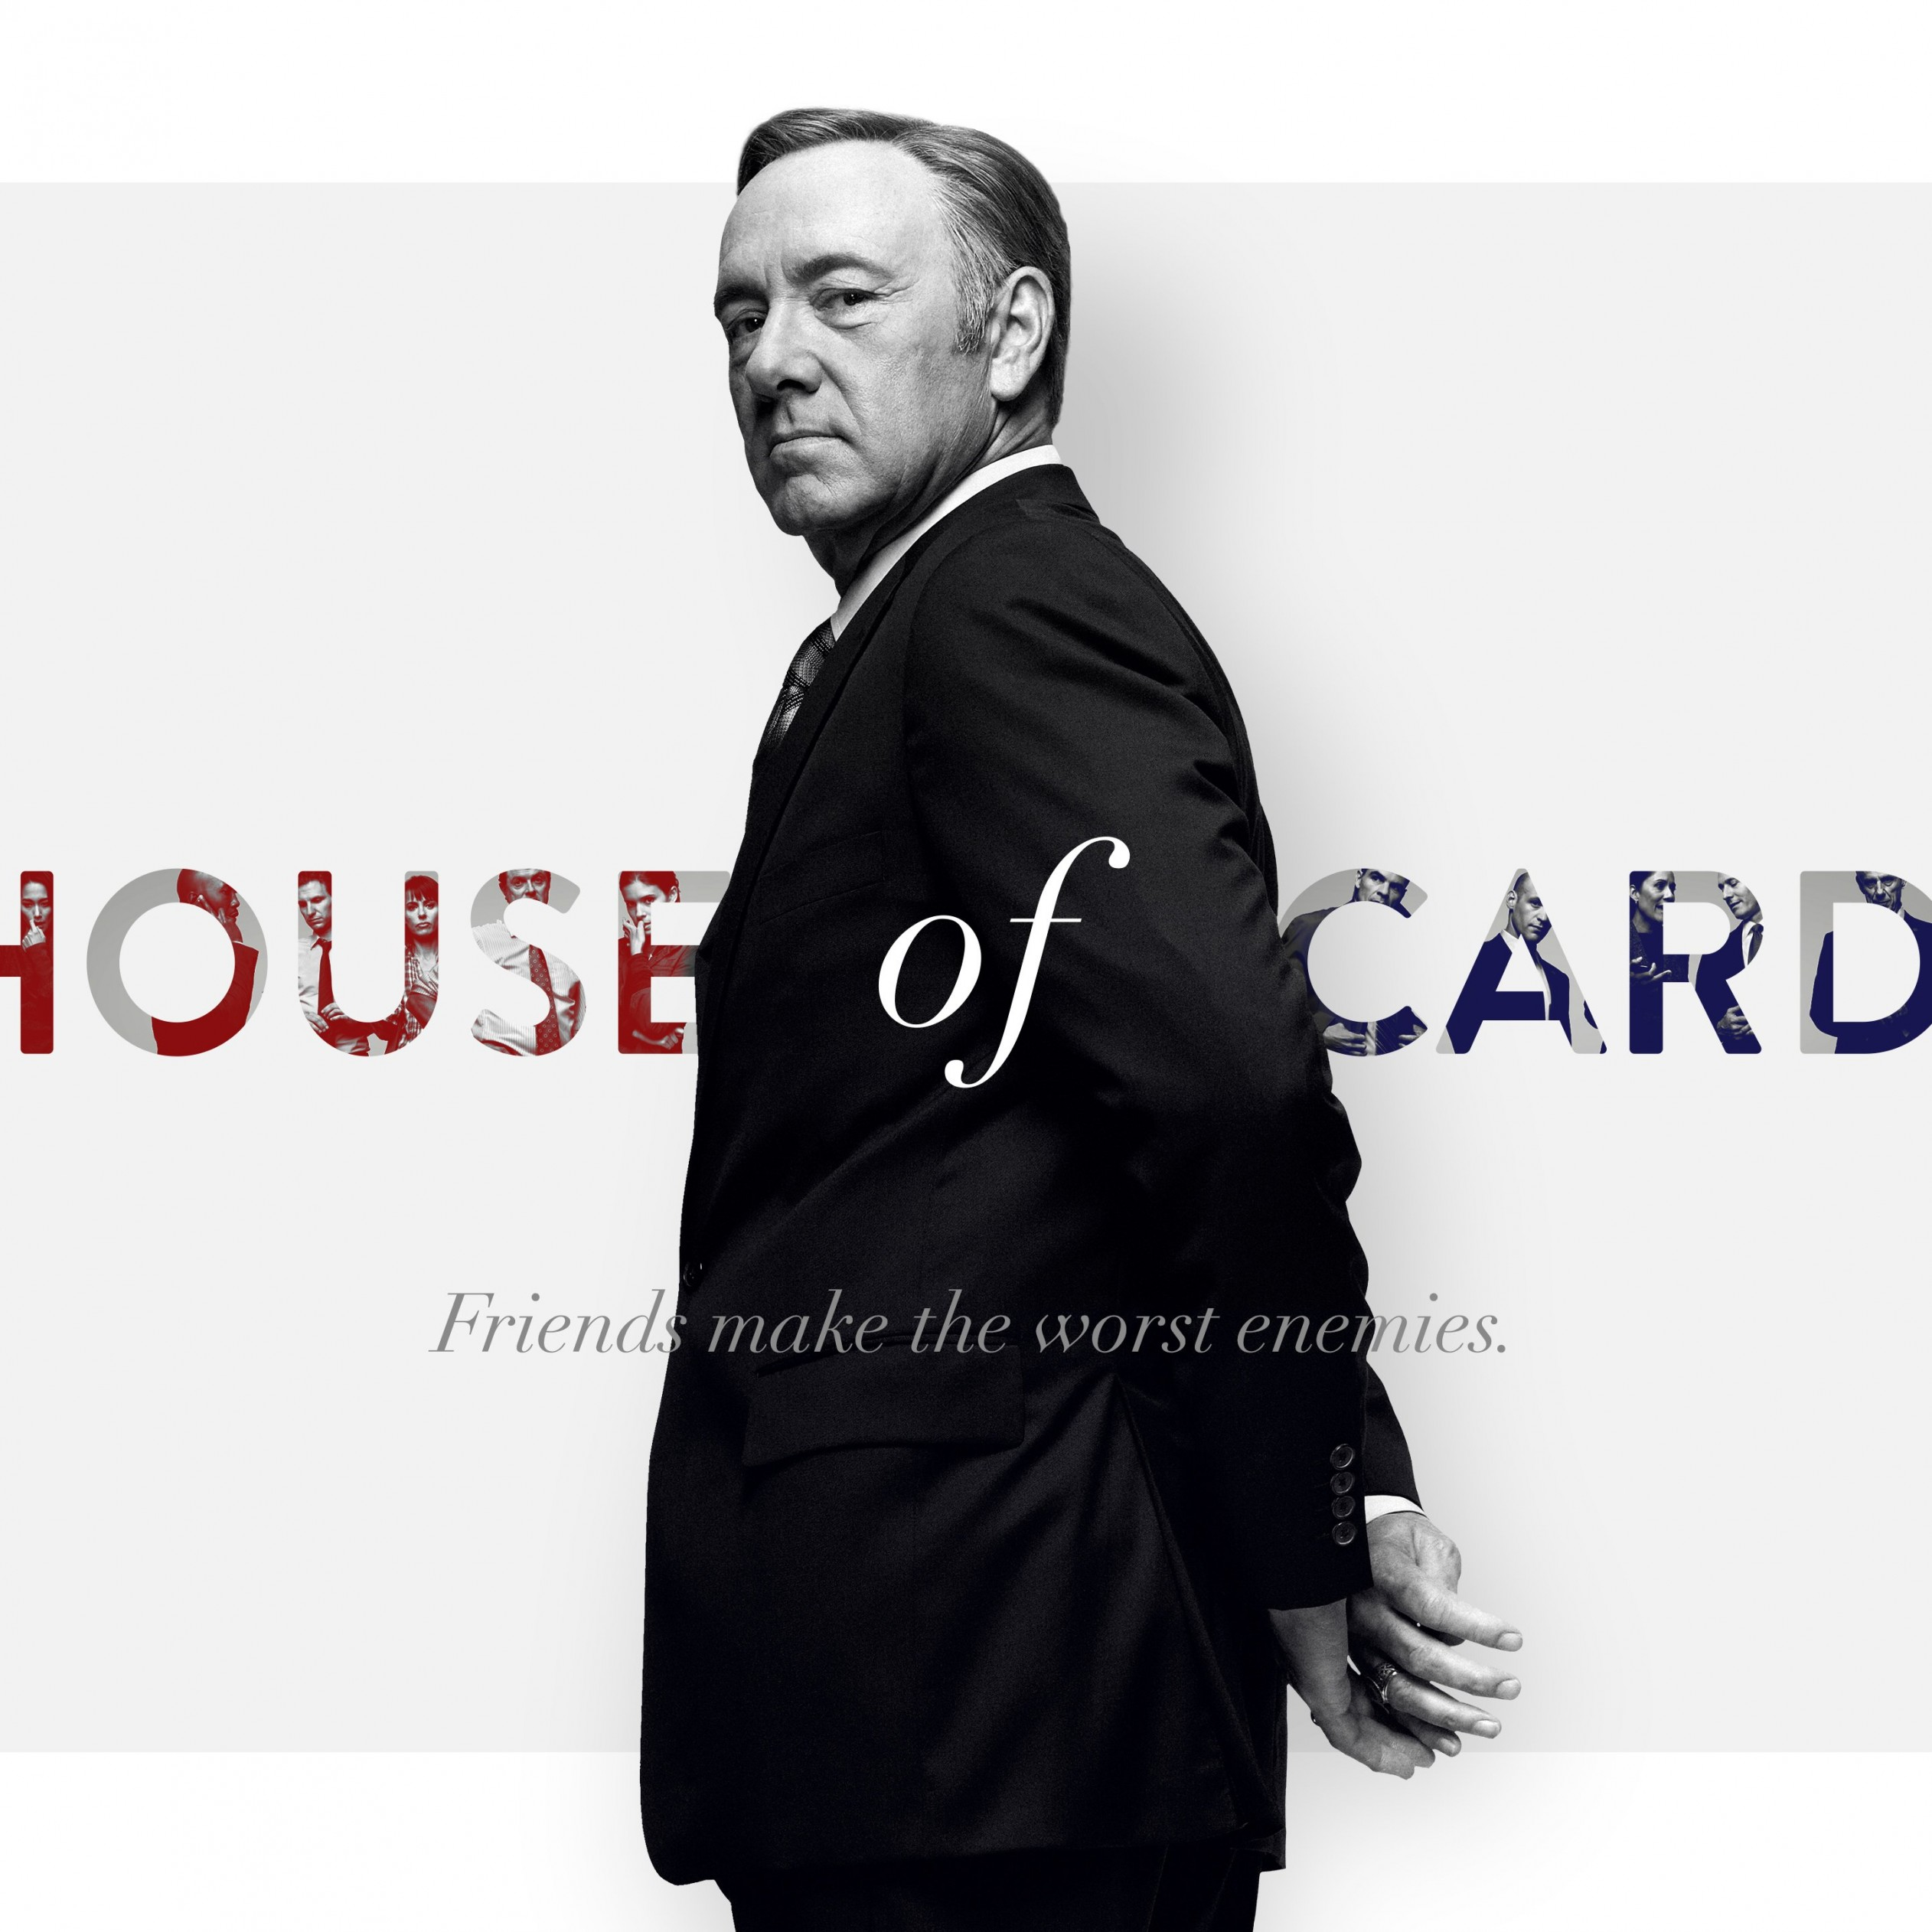 Frank Underwood - House of Cards Wallpaper for Apple iPad Air